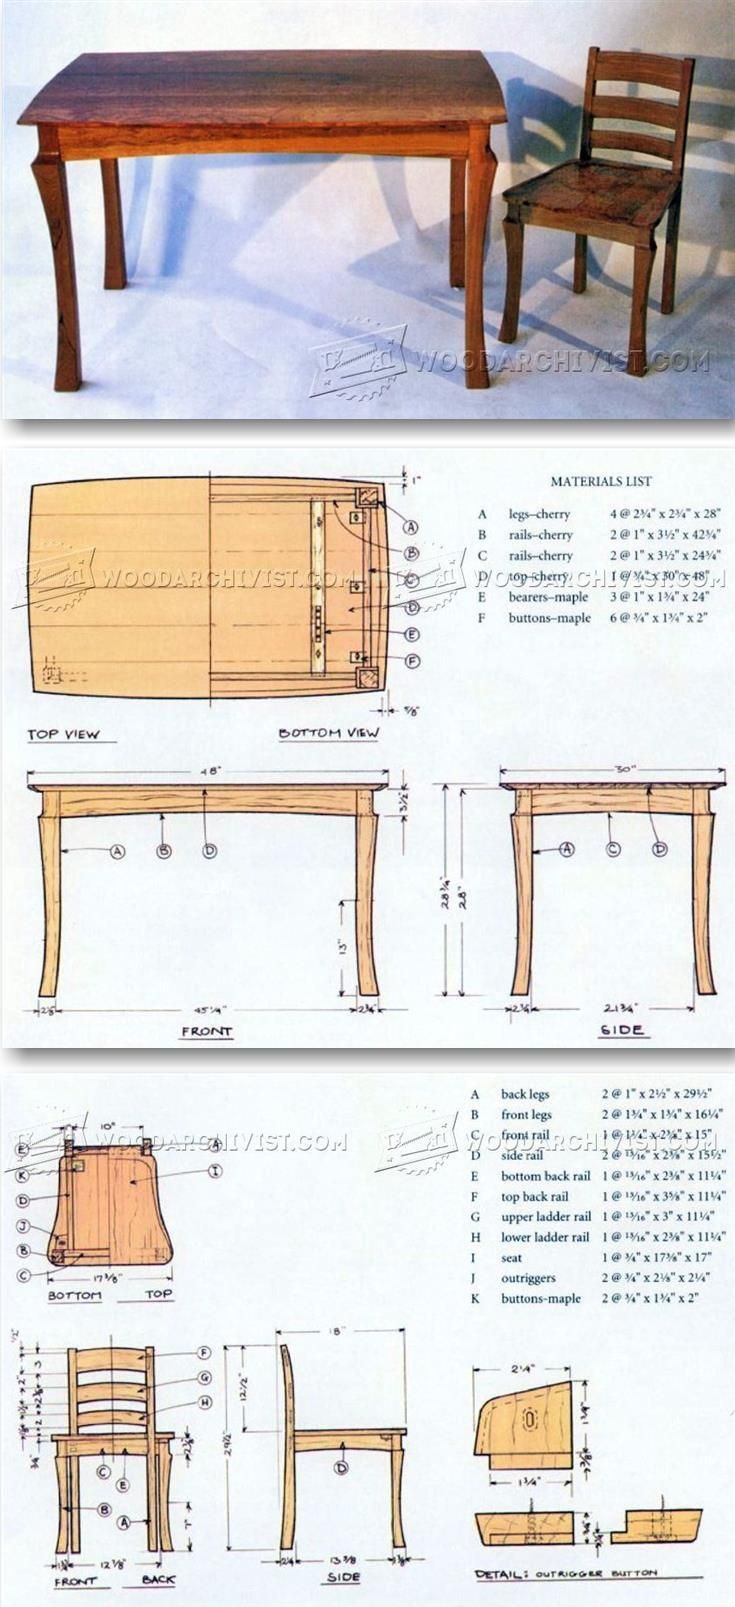 How to build a wingback chair my woodworking plans - Dining Table And Chairs Plans Furniture Plans And Projects Woodarchivist Com